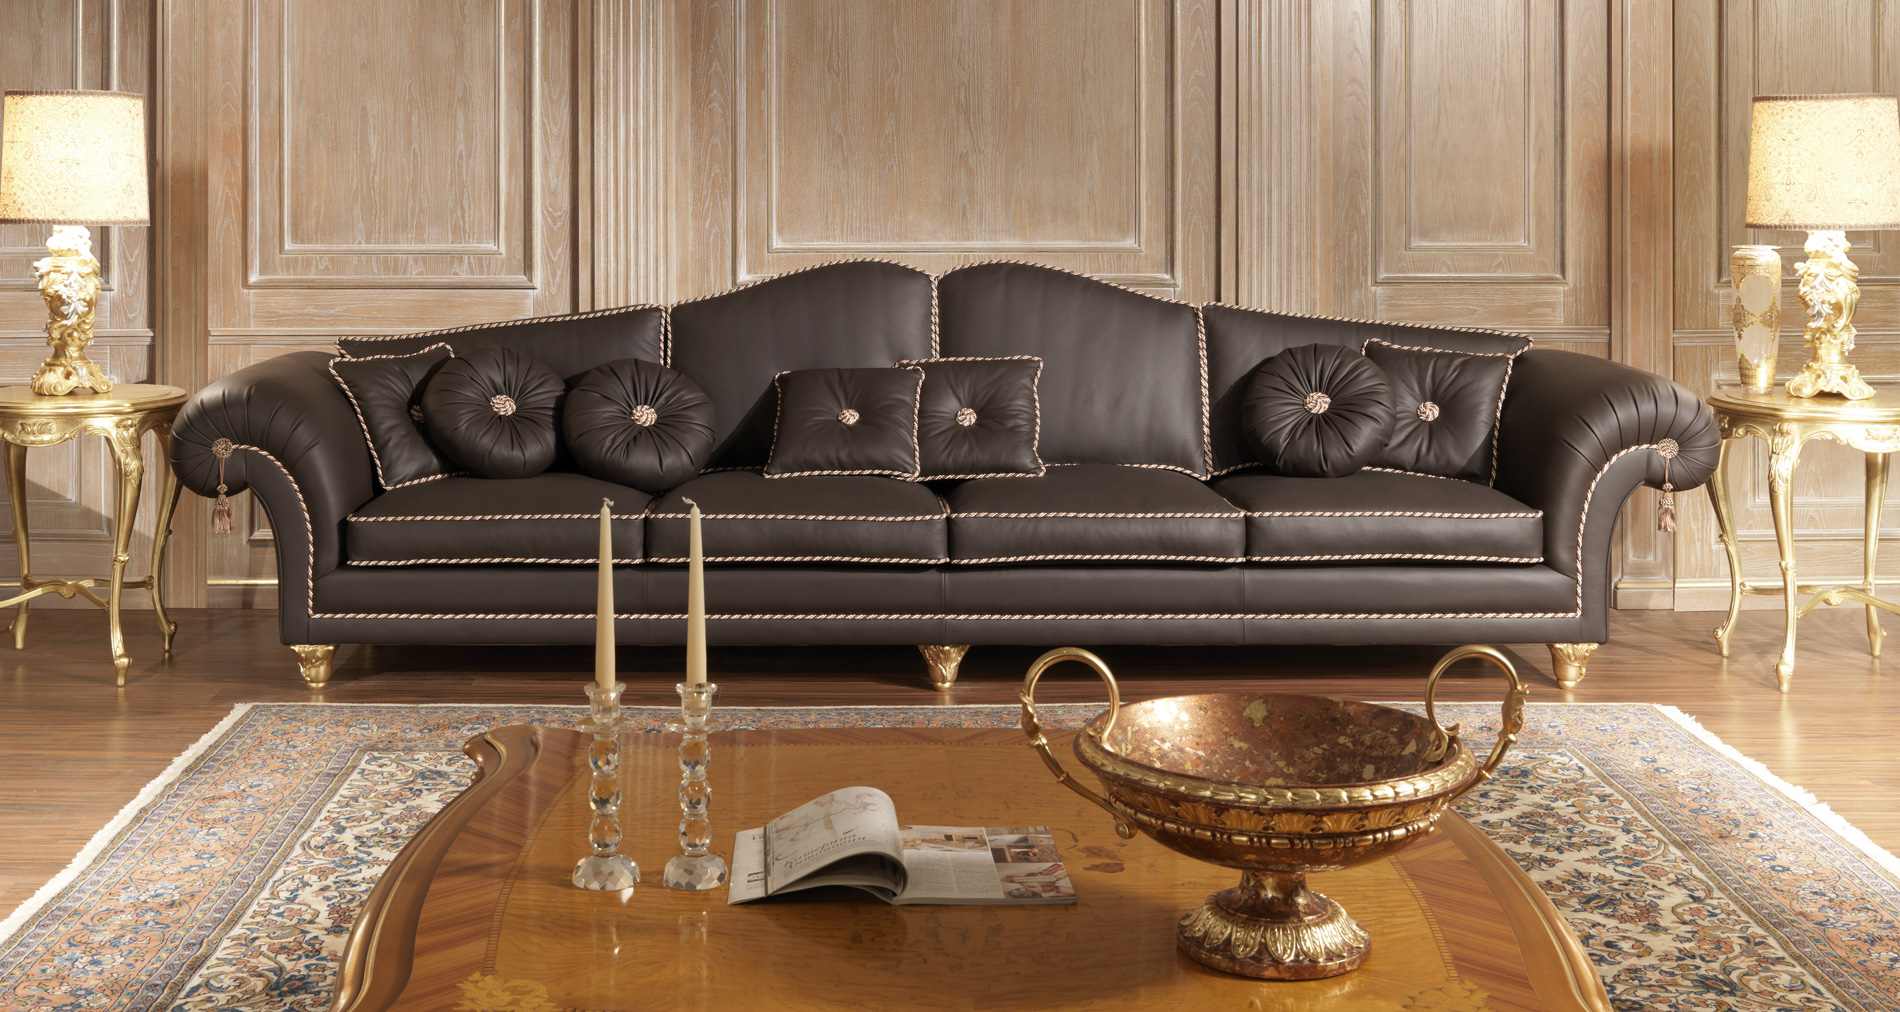 luxury sofas in leather classic style modern beauty. Black Bedroom Furniture Sets. Home Design Ideas